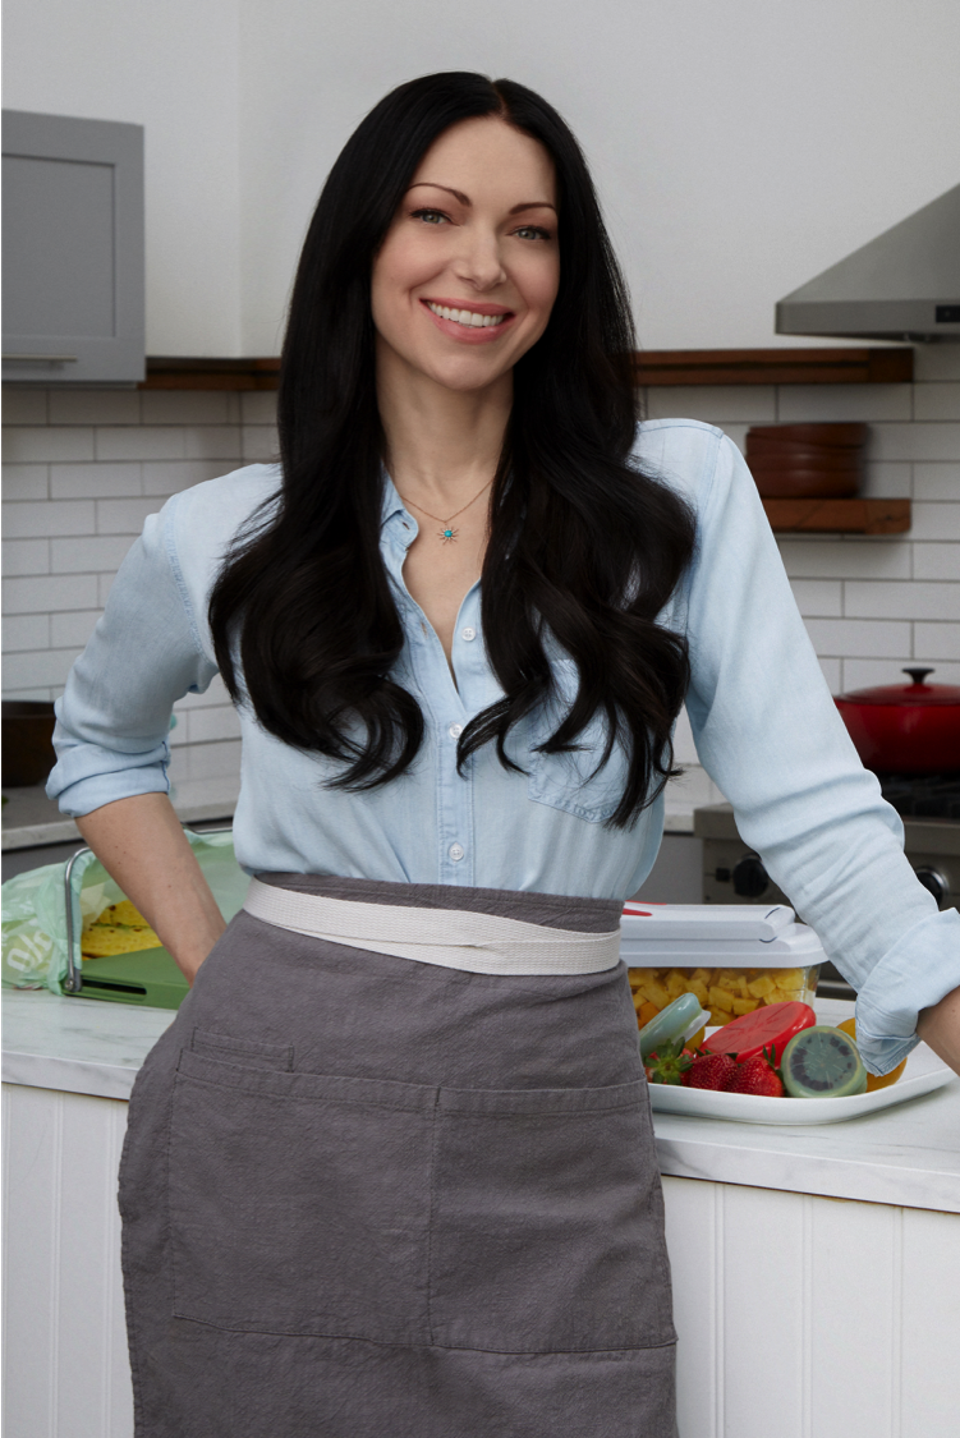 Laura Prepon posing in a kitchen with her PrepOn Kitchen cookware line